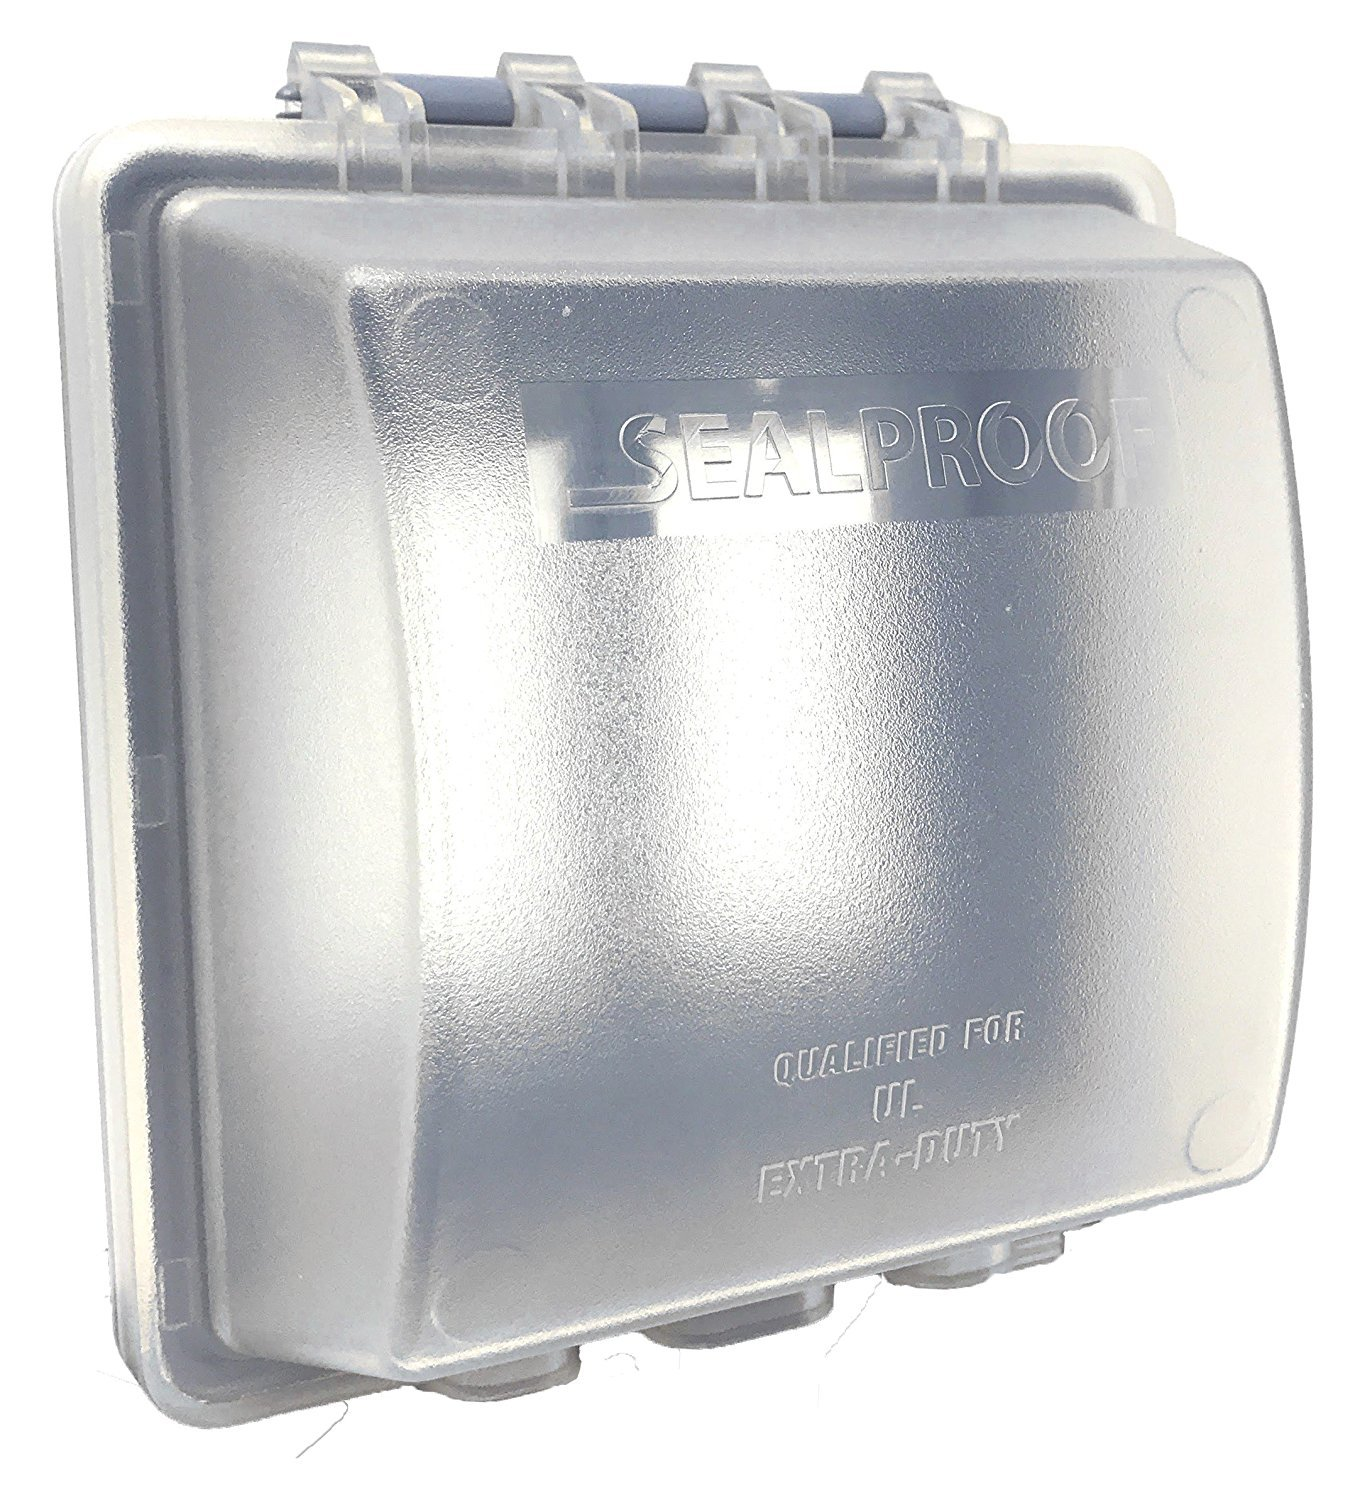 Sealproof 2 Gang Weatherproof In Use Electrical Power Outlet Cover Double Gang 658746042466 Ebay